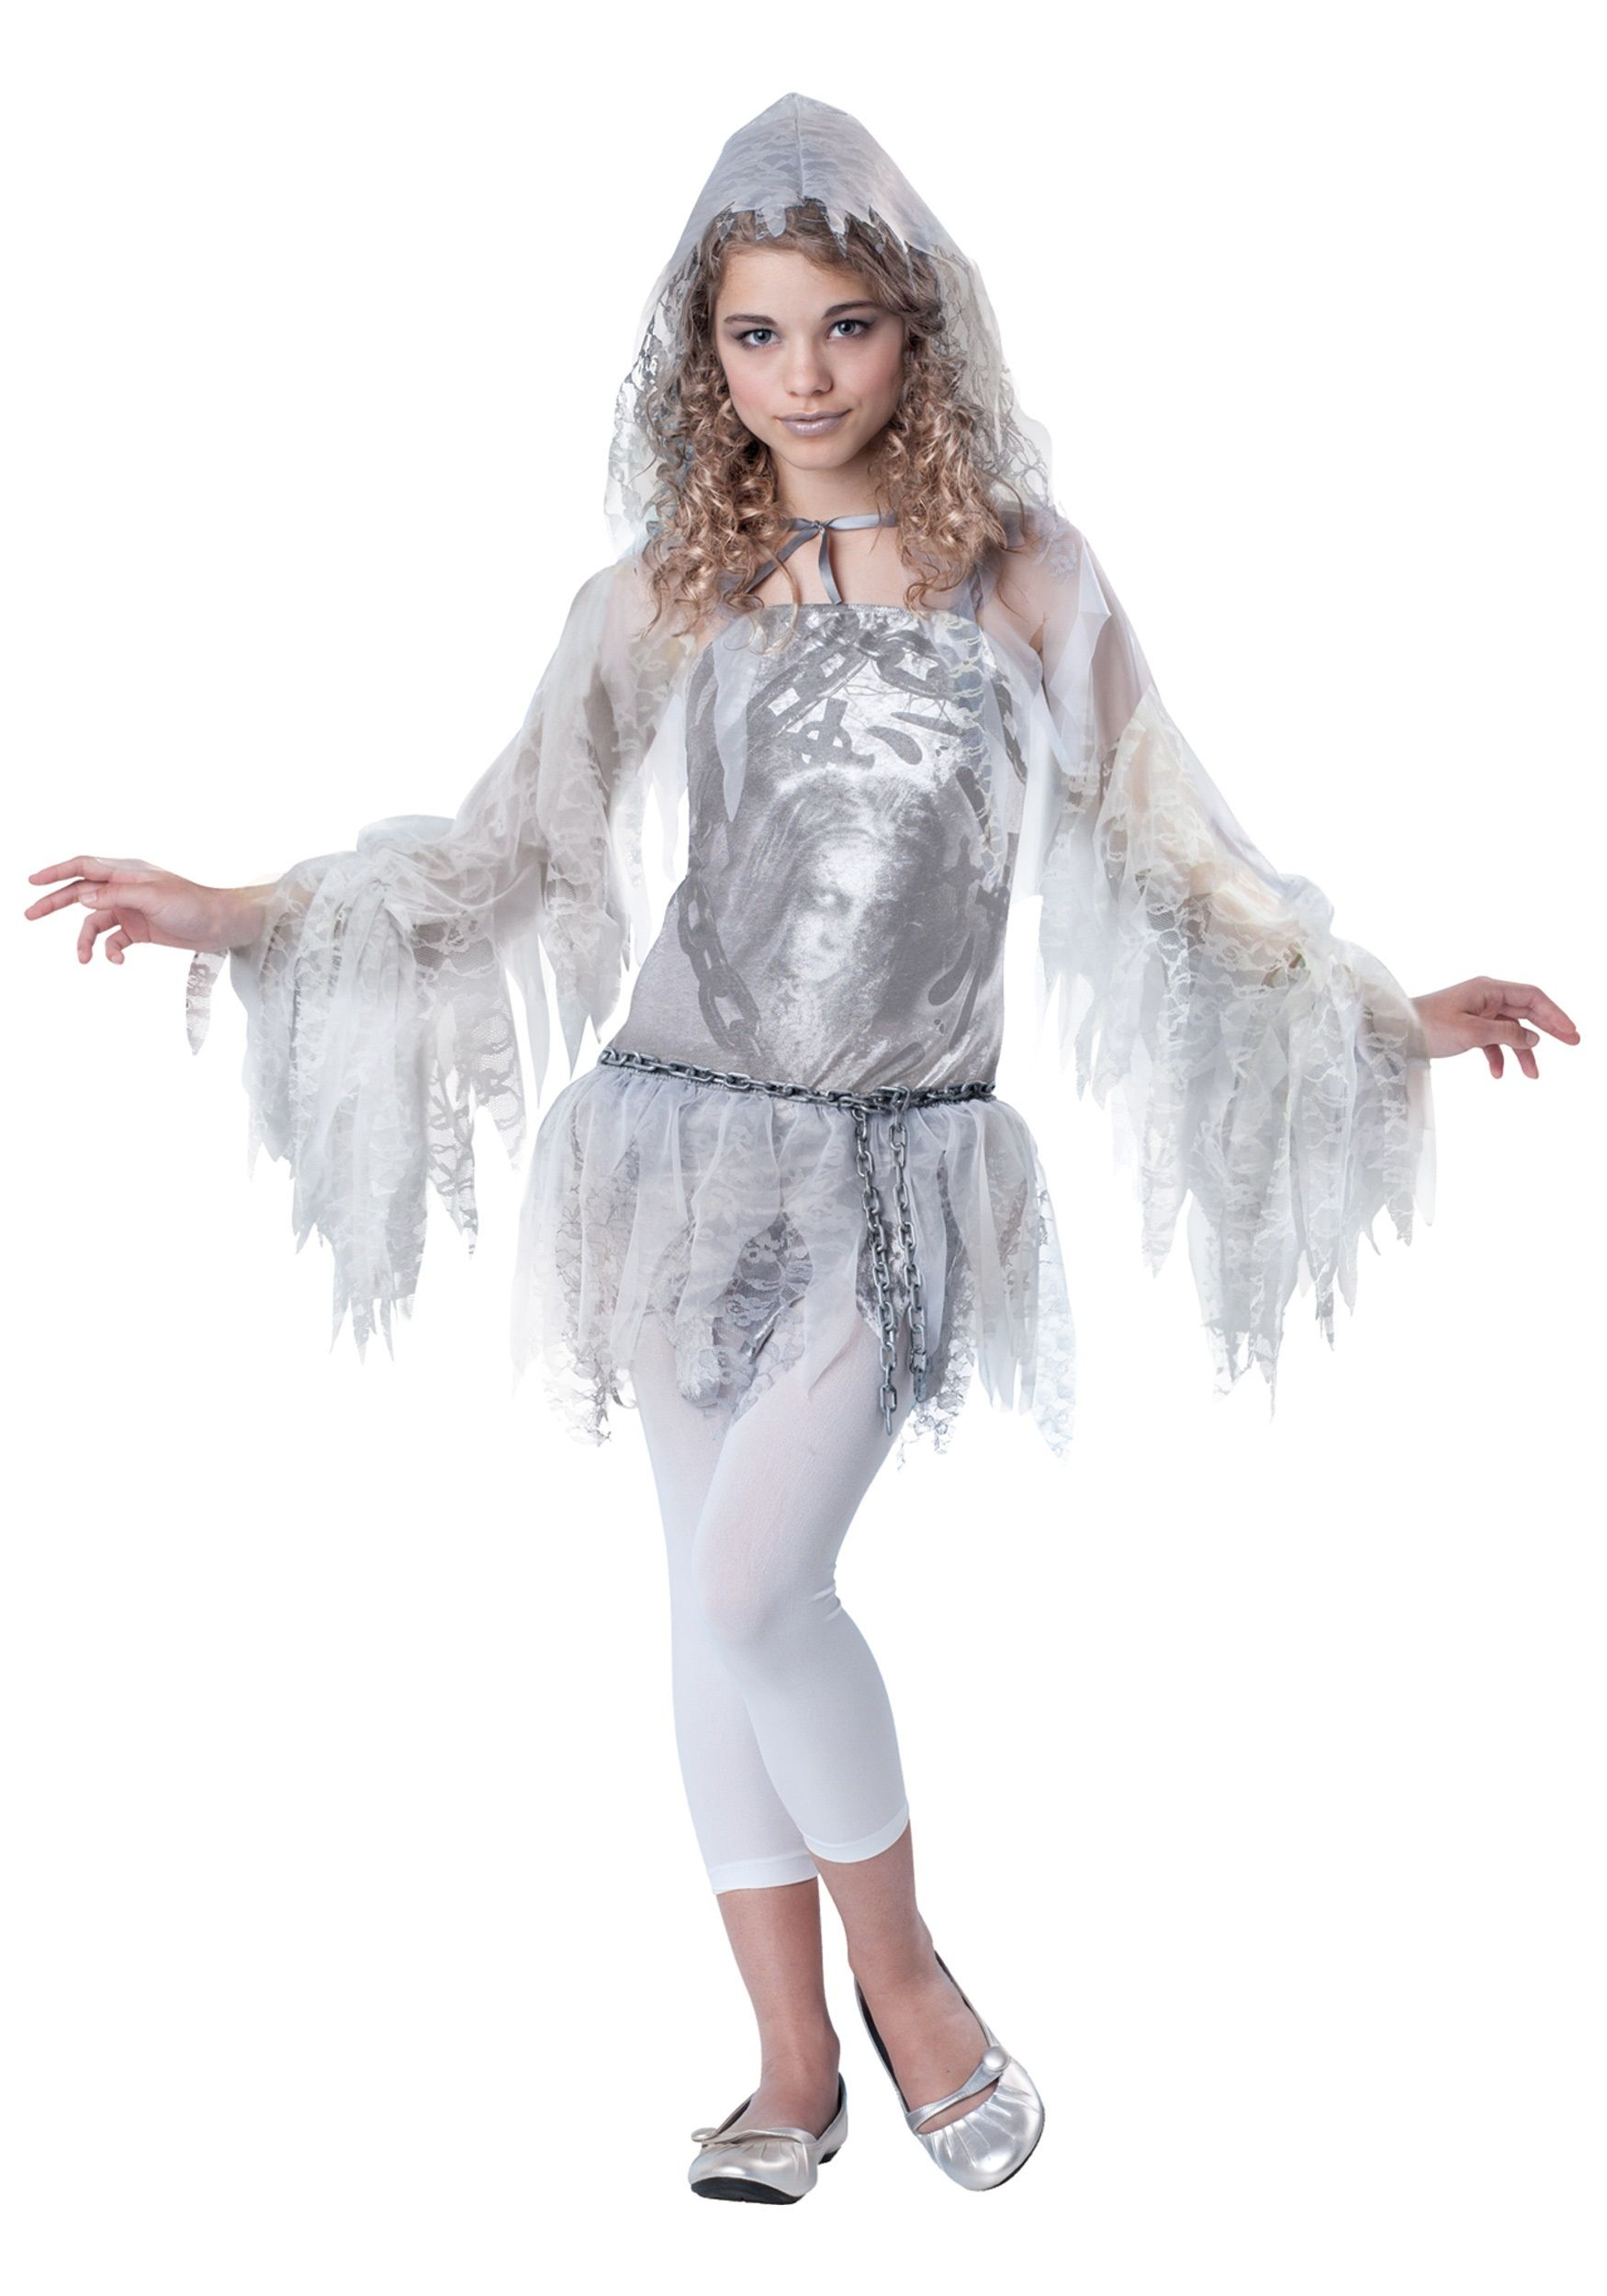 Tween Girls Sassy Spirit Costume | Tween costumes, Ghost costumes ...